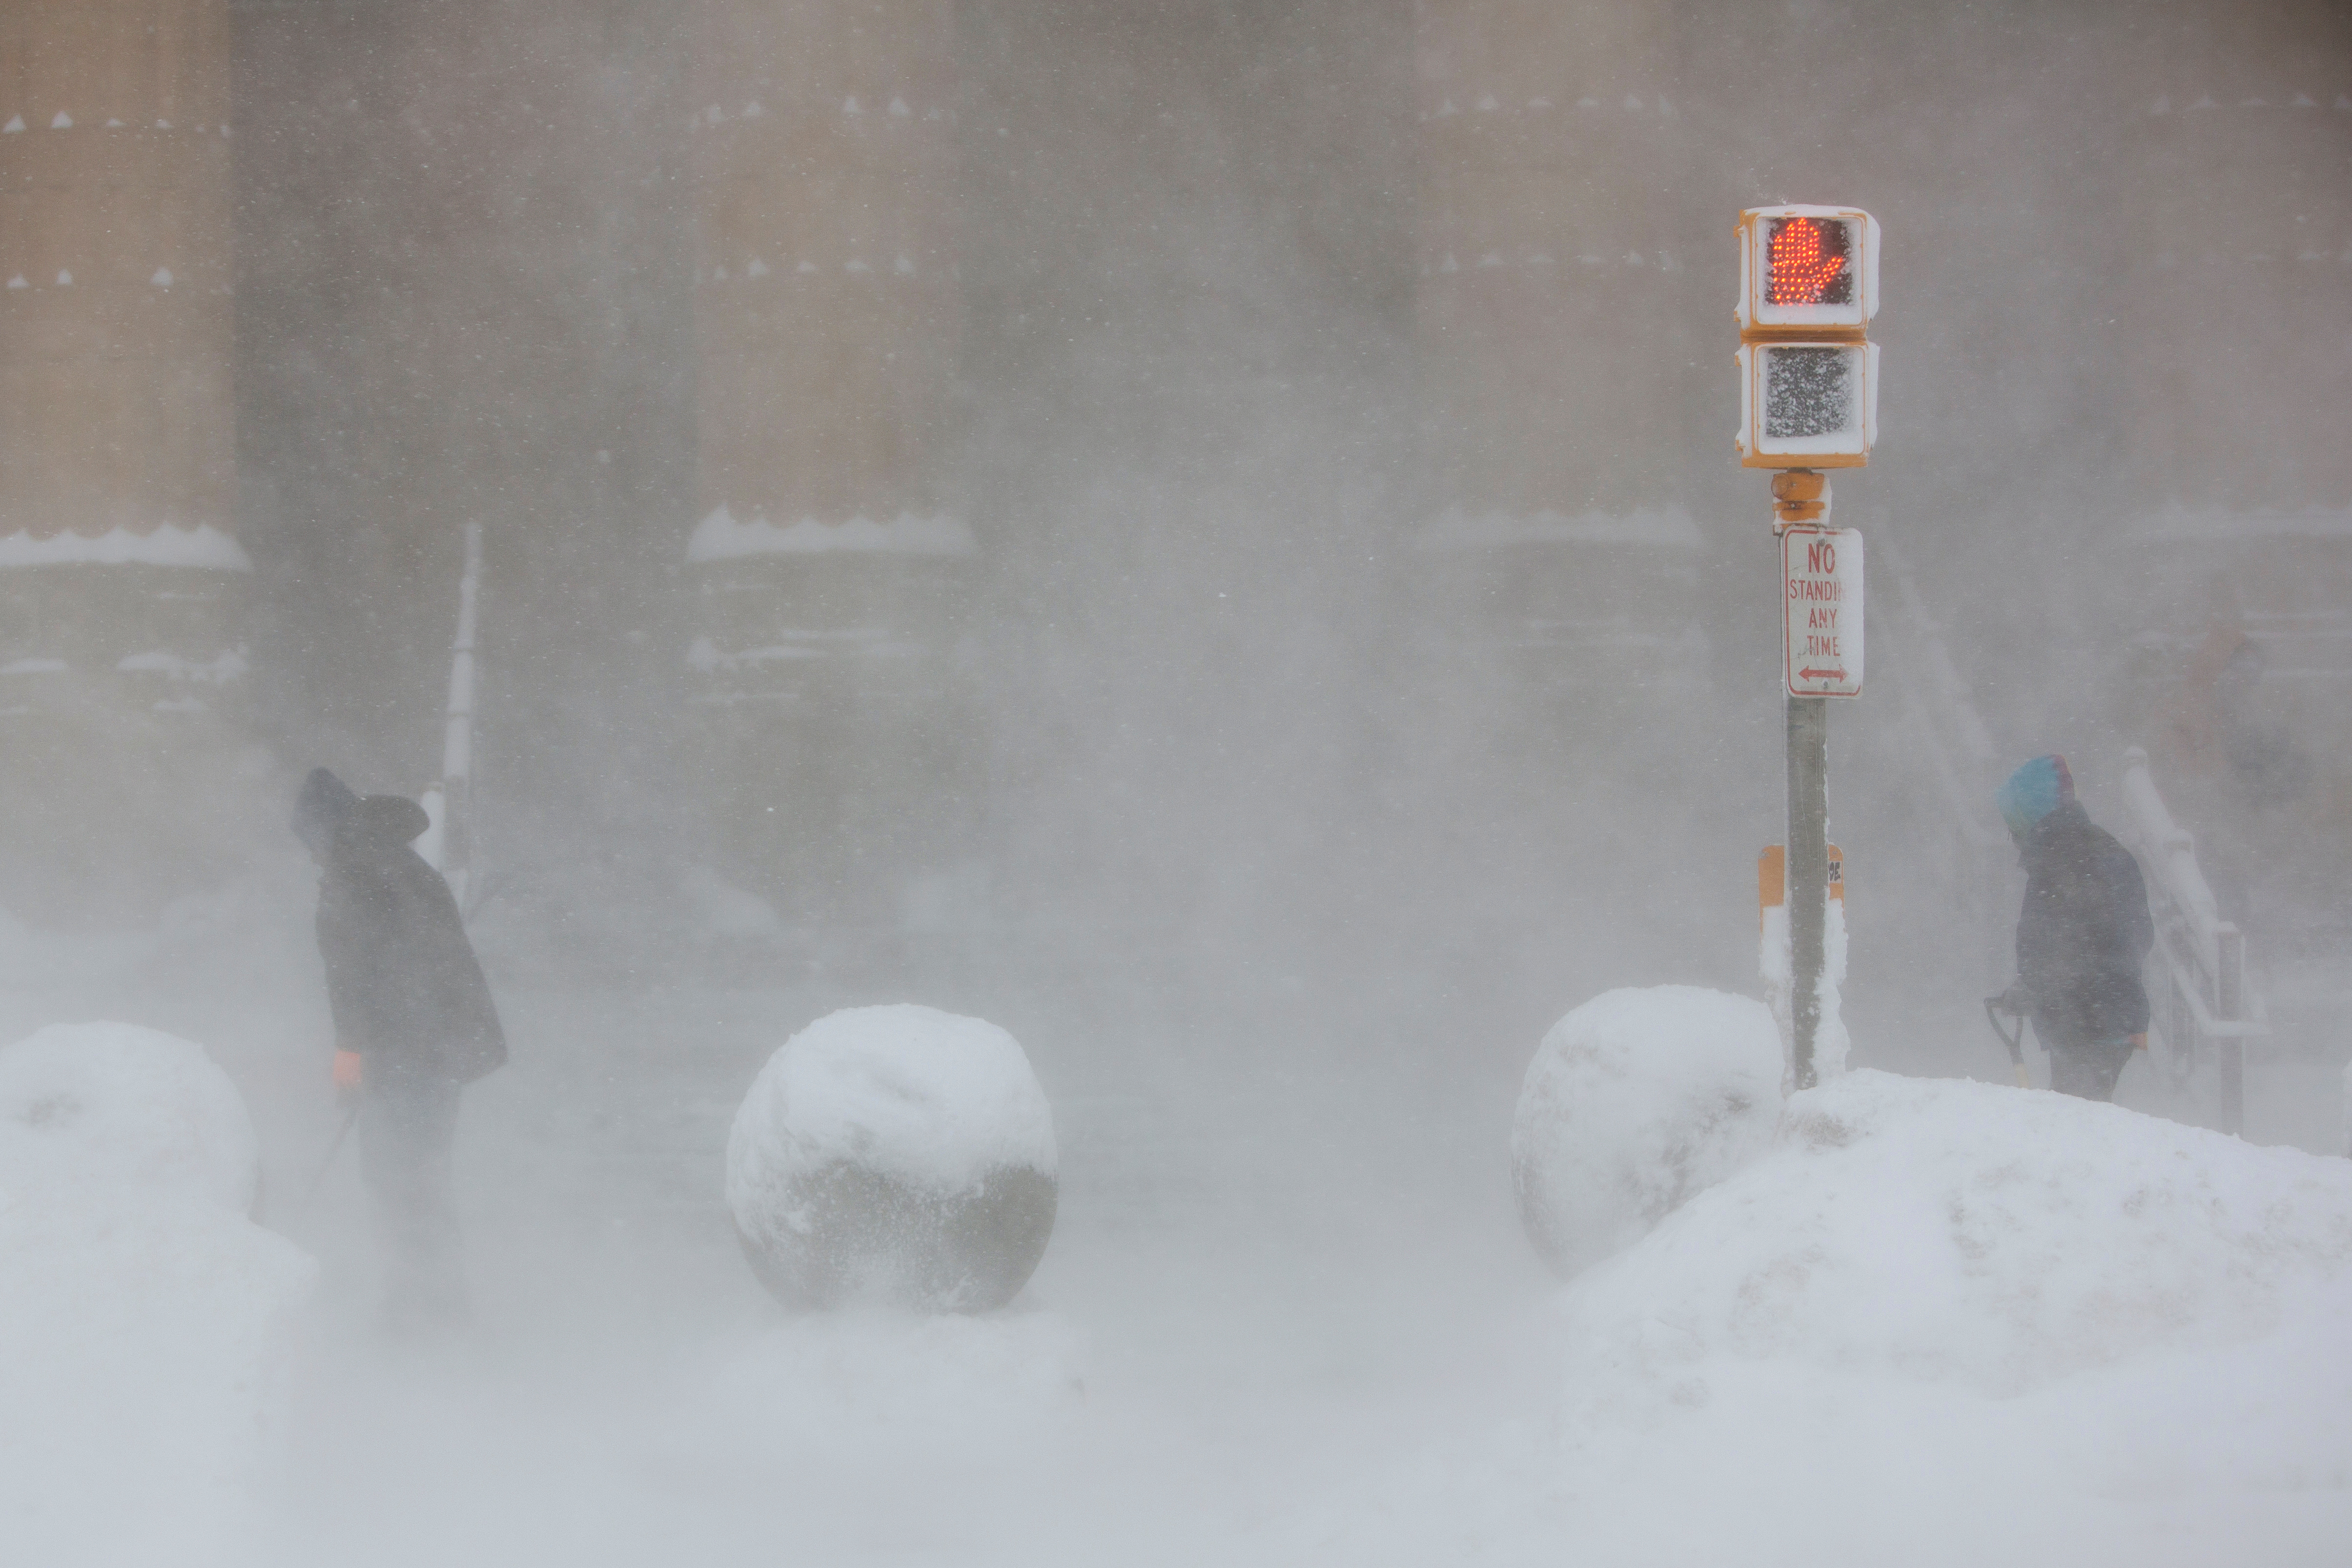 Workers shovel at the entrance to City Hall in whiteout conditions during winter storm in Buffalo, NY